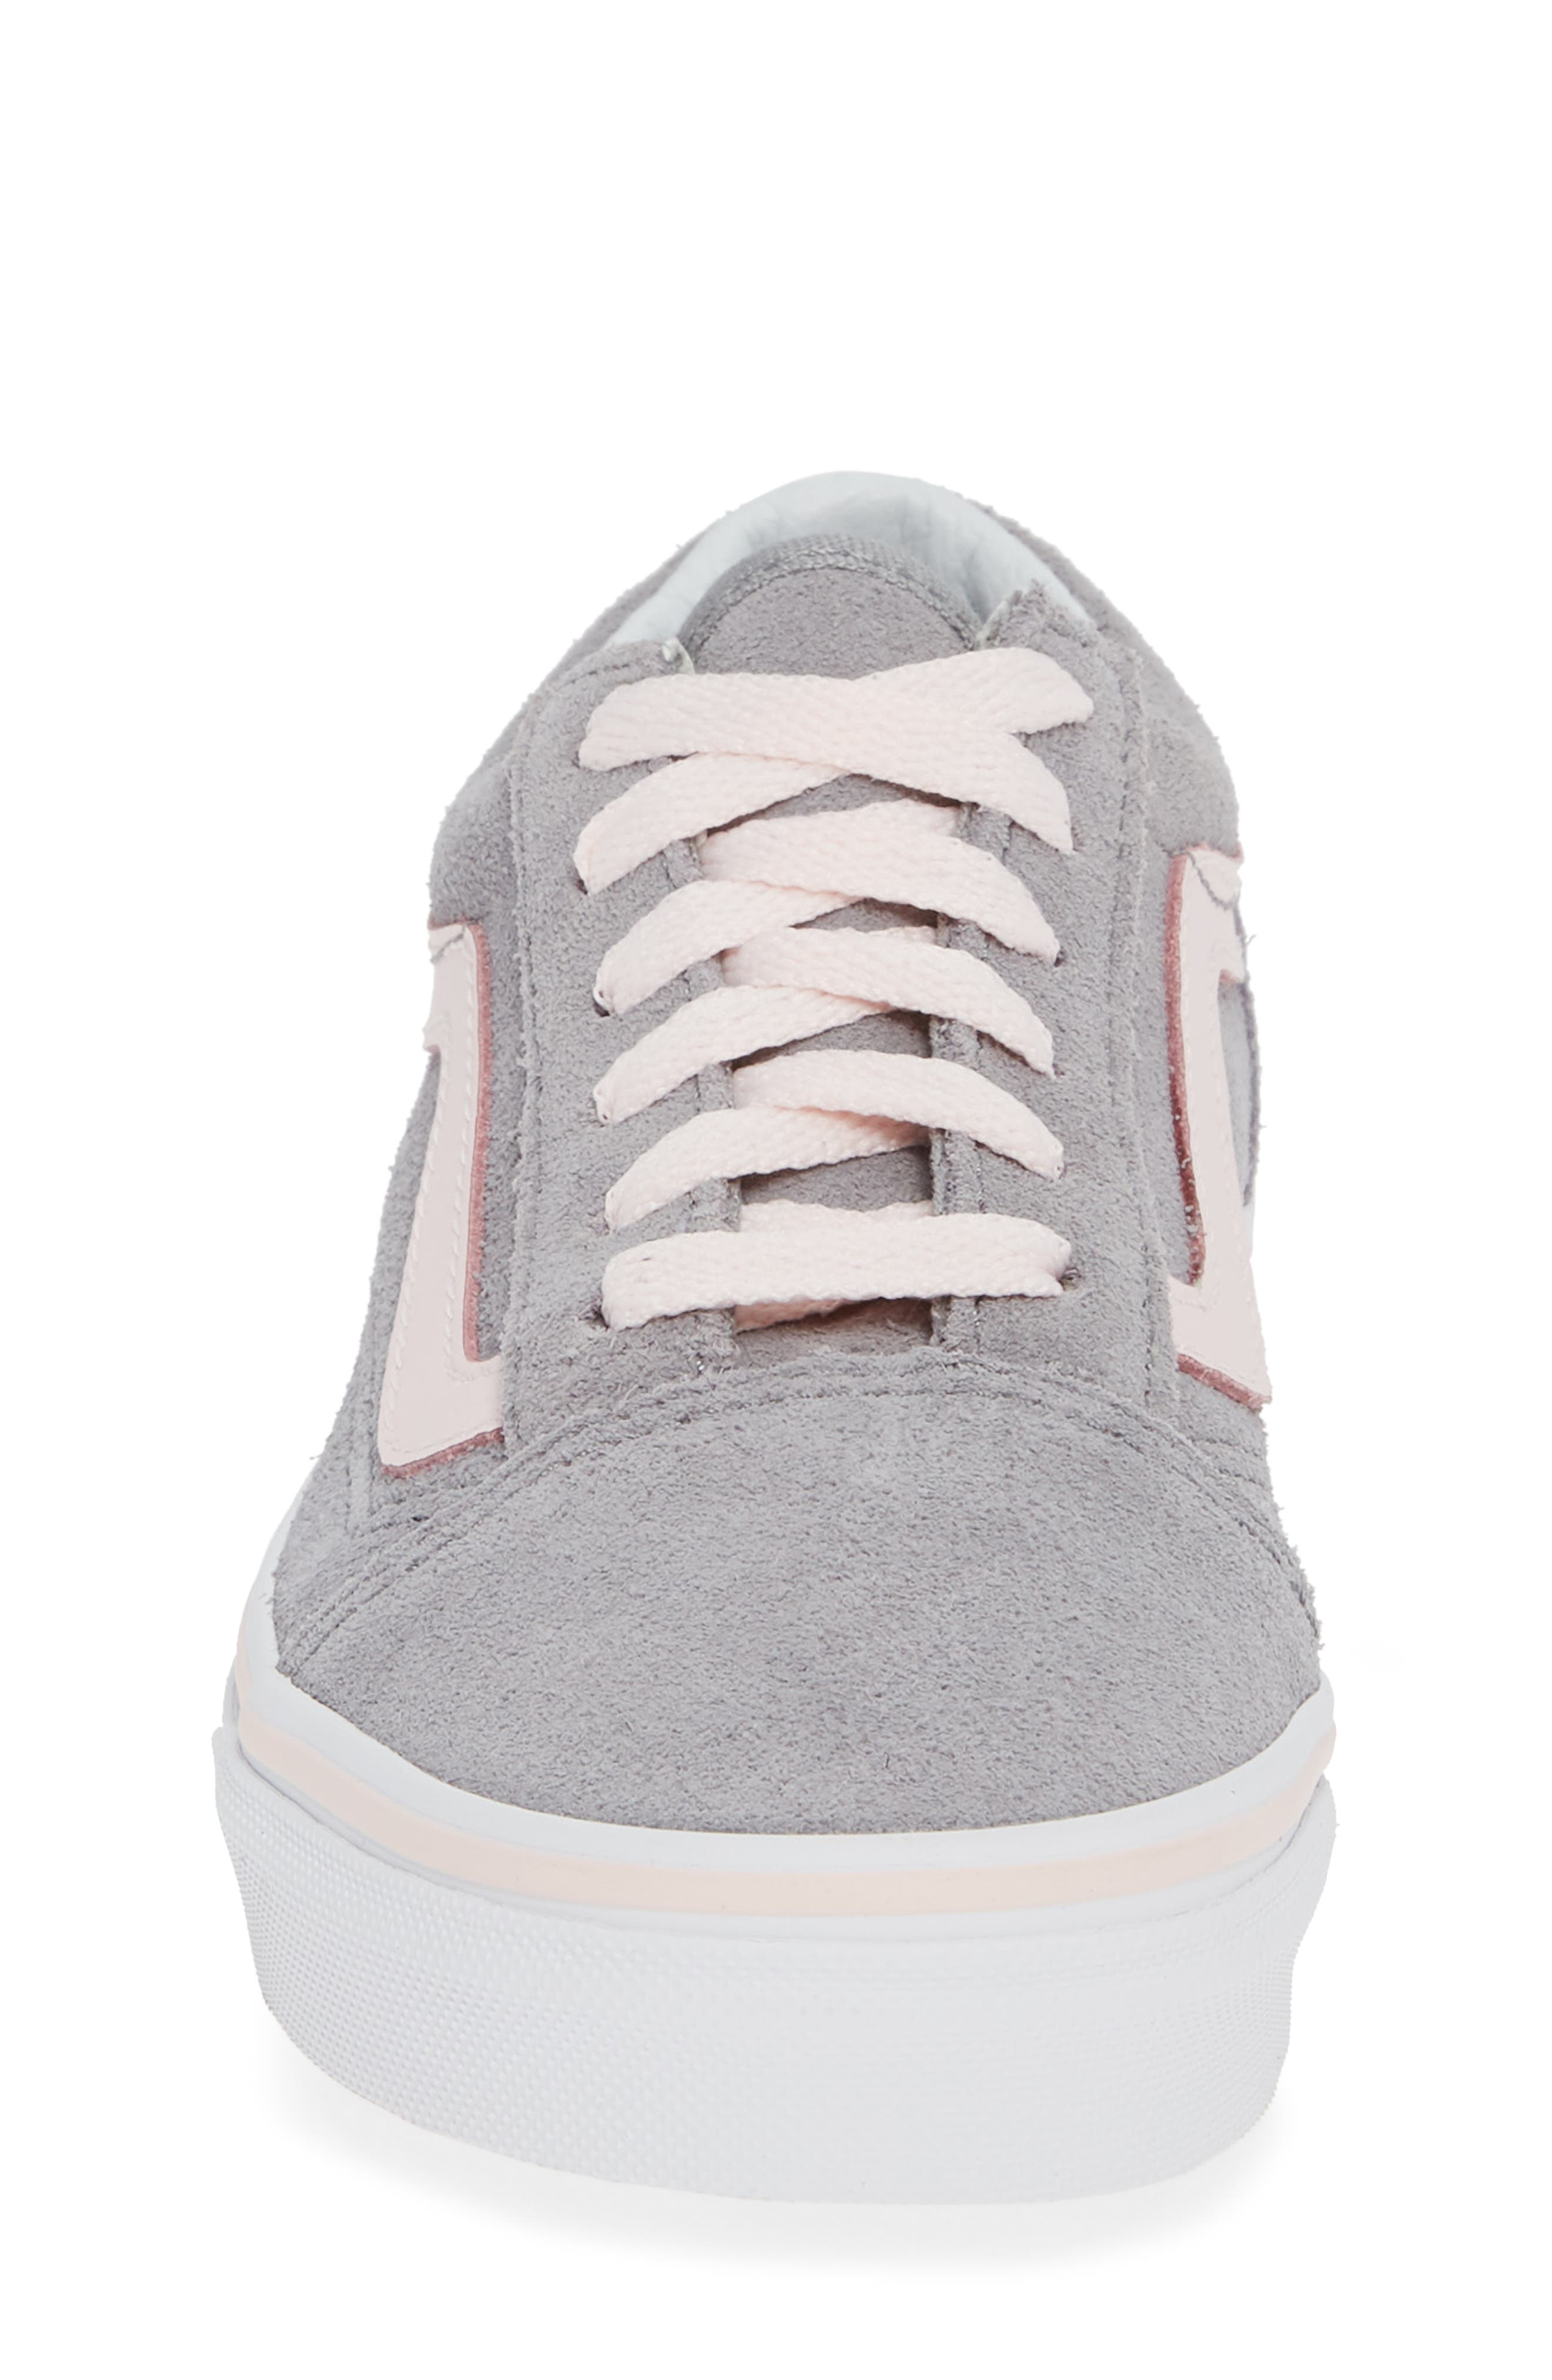 Old Skool Sneaker,                             Alternate thumbnail 4, color,                             SUEDE ALLOY/ PINK/ TRUE WHITE